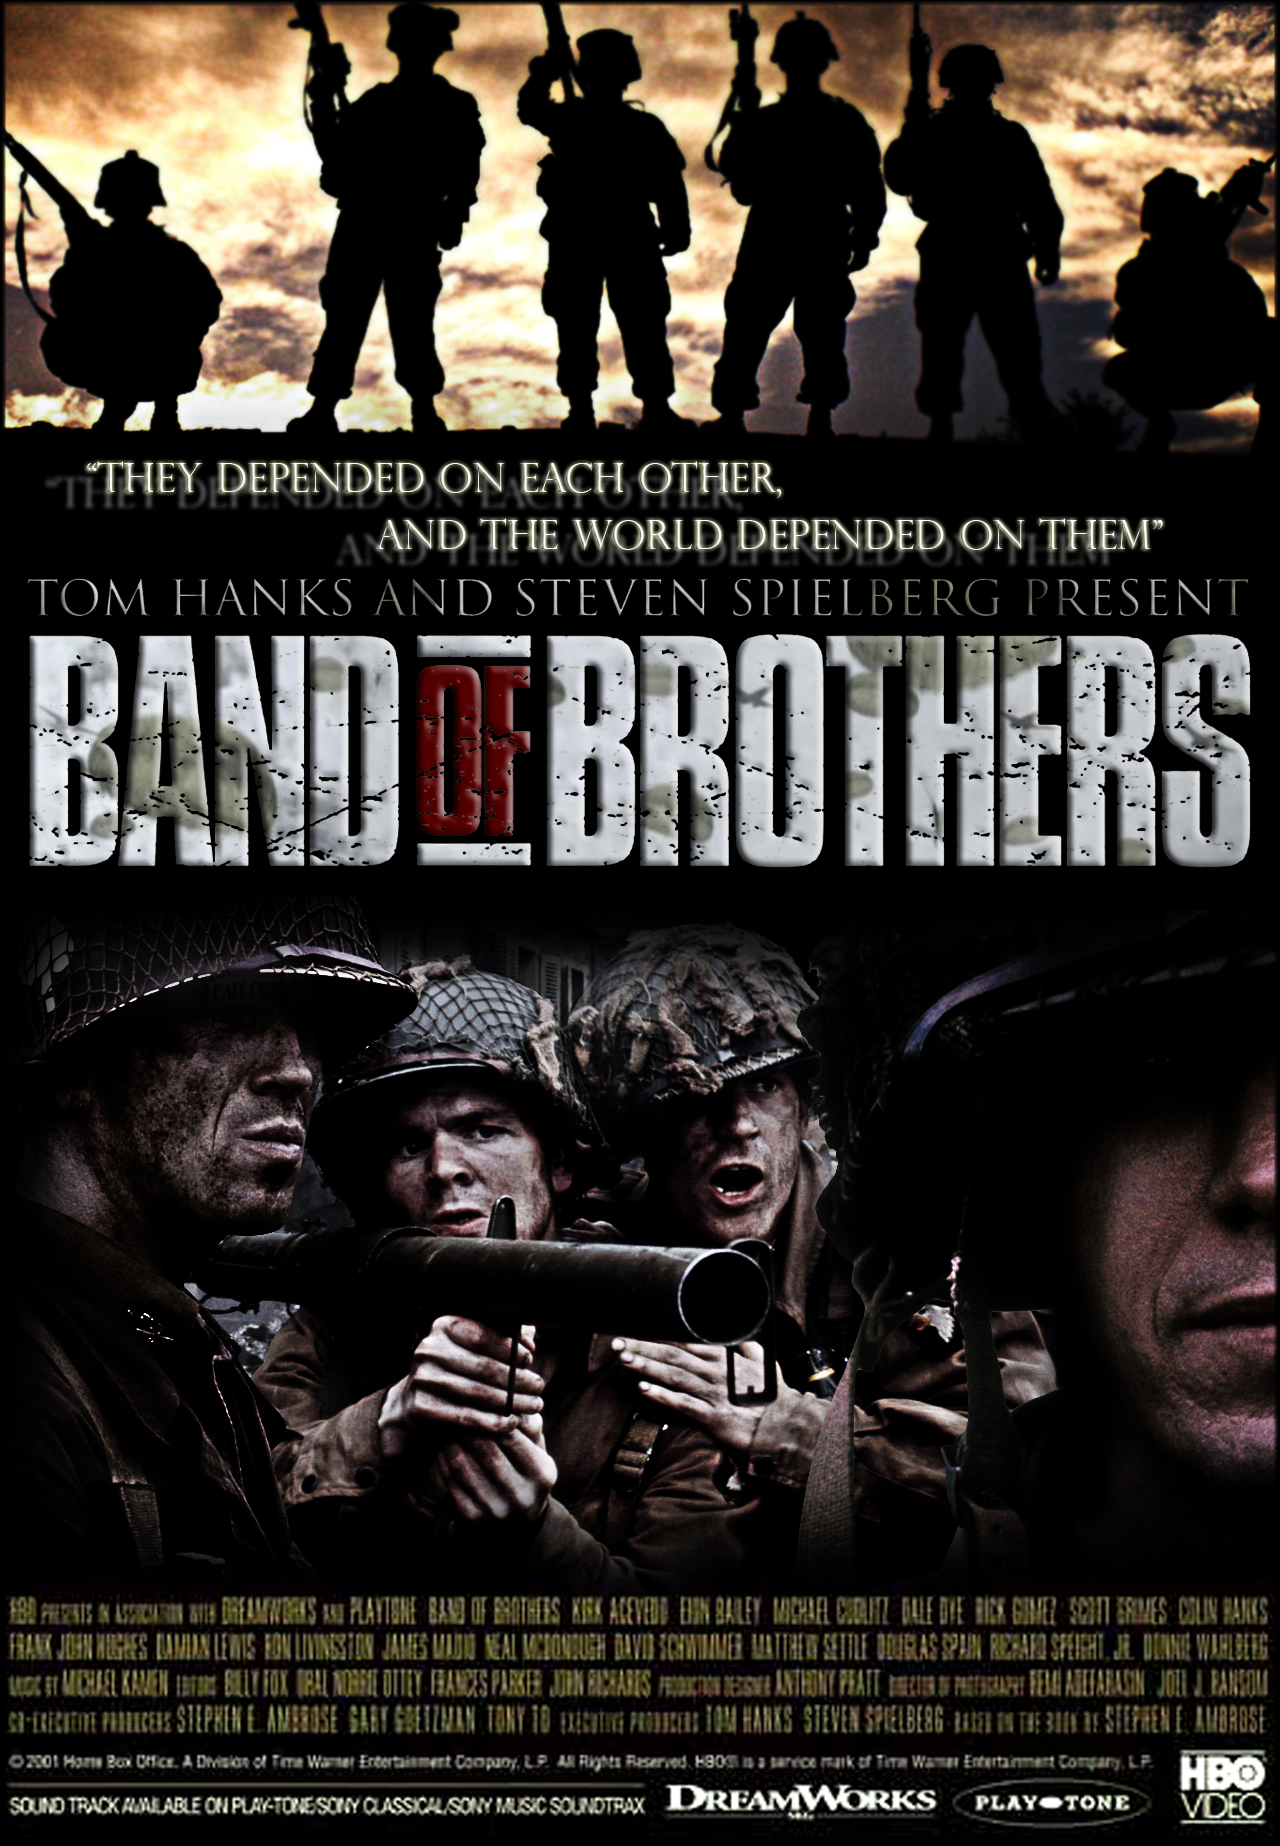 Band of Brothers Plakát terv